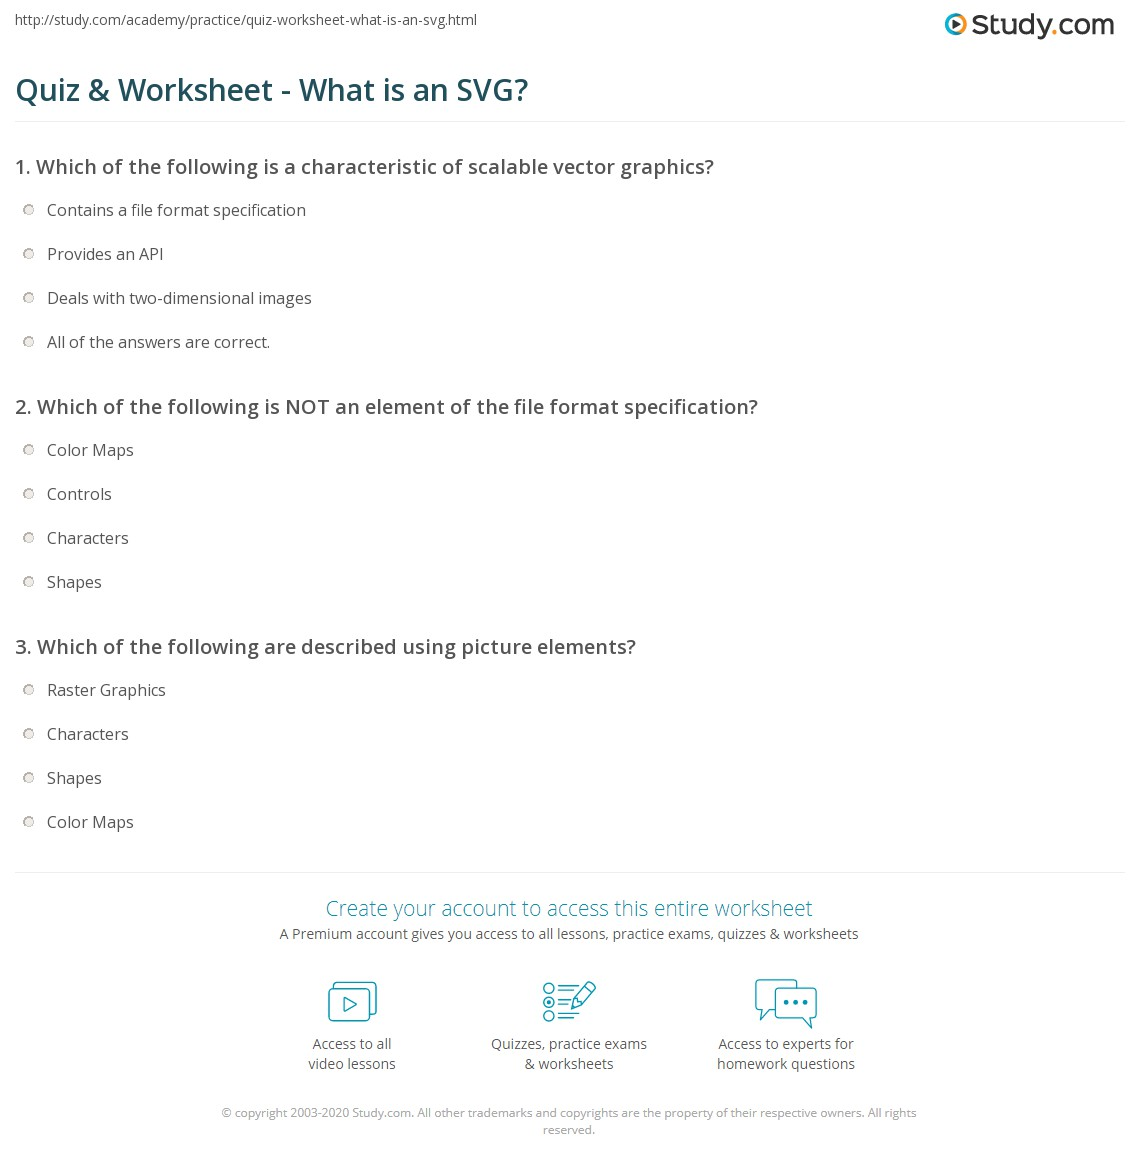 quiz & worksheet - what is an svg? | study